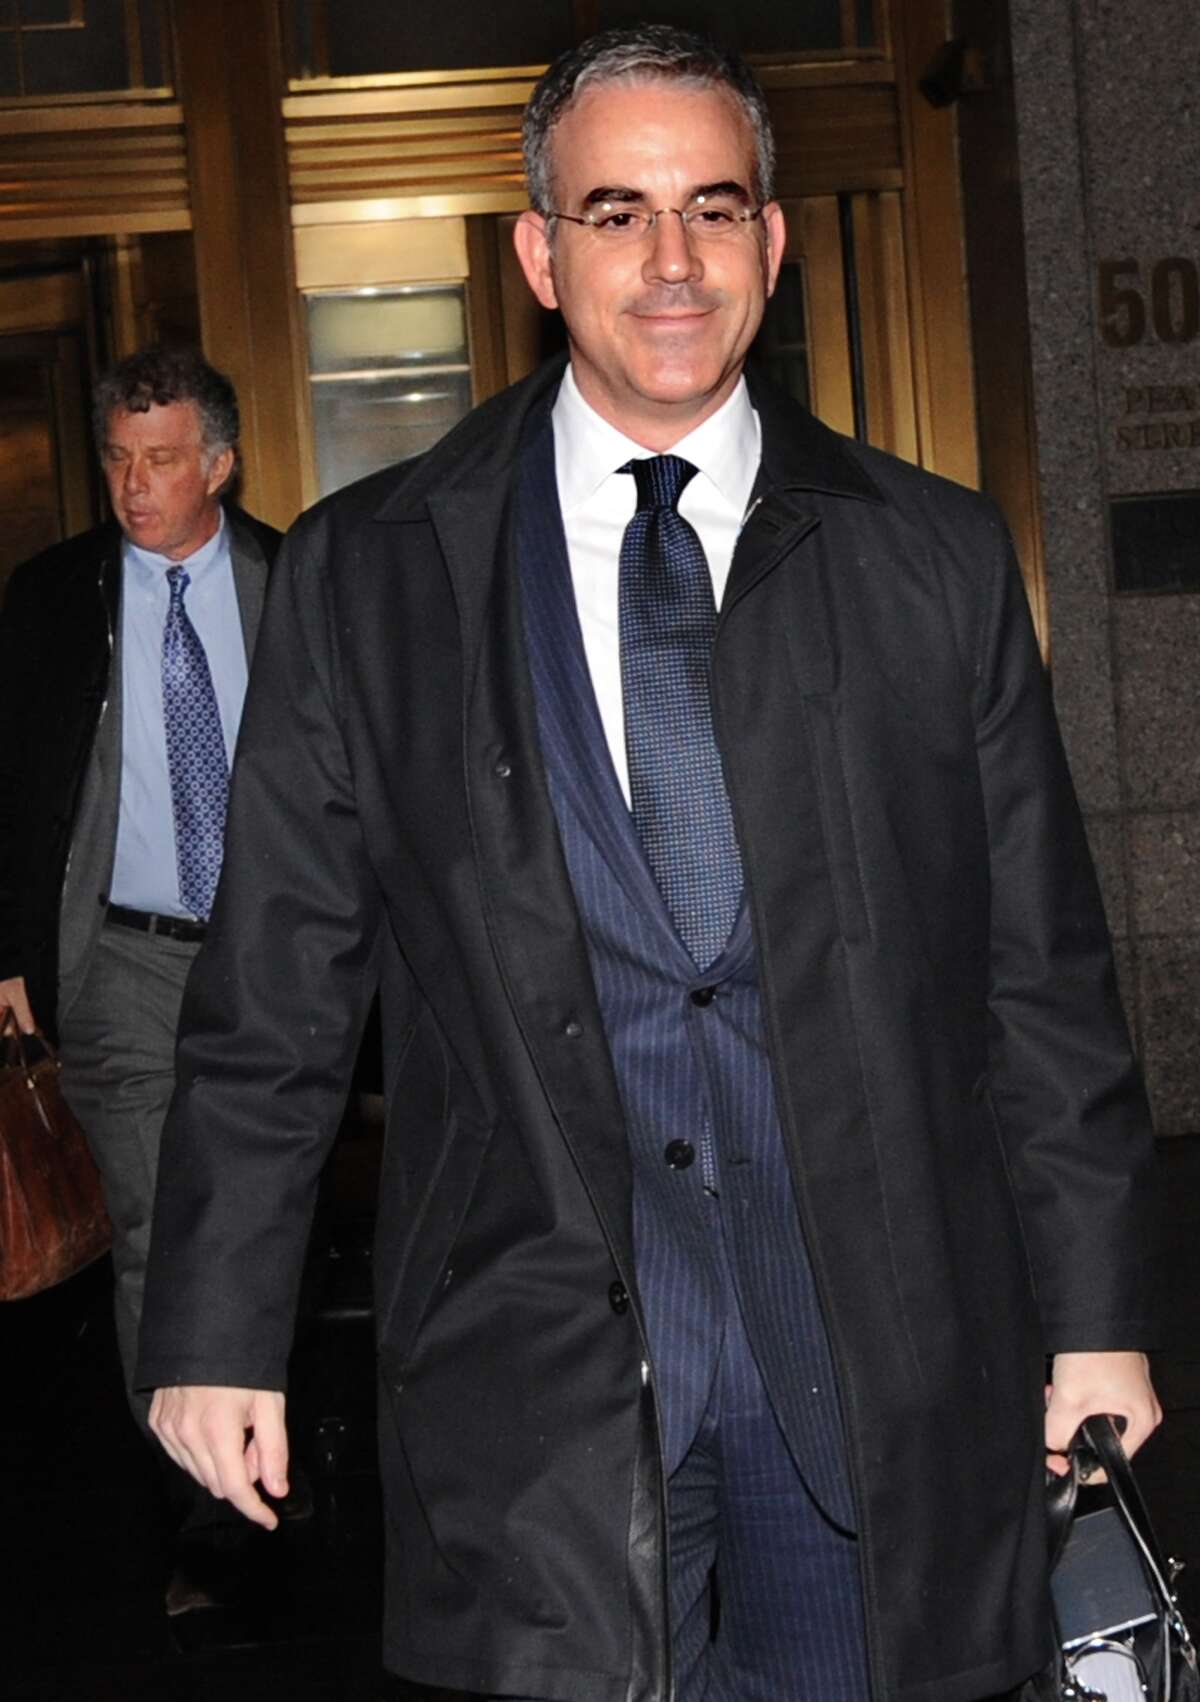 Co-founder of Level Global Investors Anthony Chiasson leaves Manhattan federal court with his attorney Reid Weingarten following, Tuesday, Nov. 27, 2012, in New York.